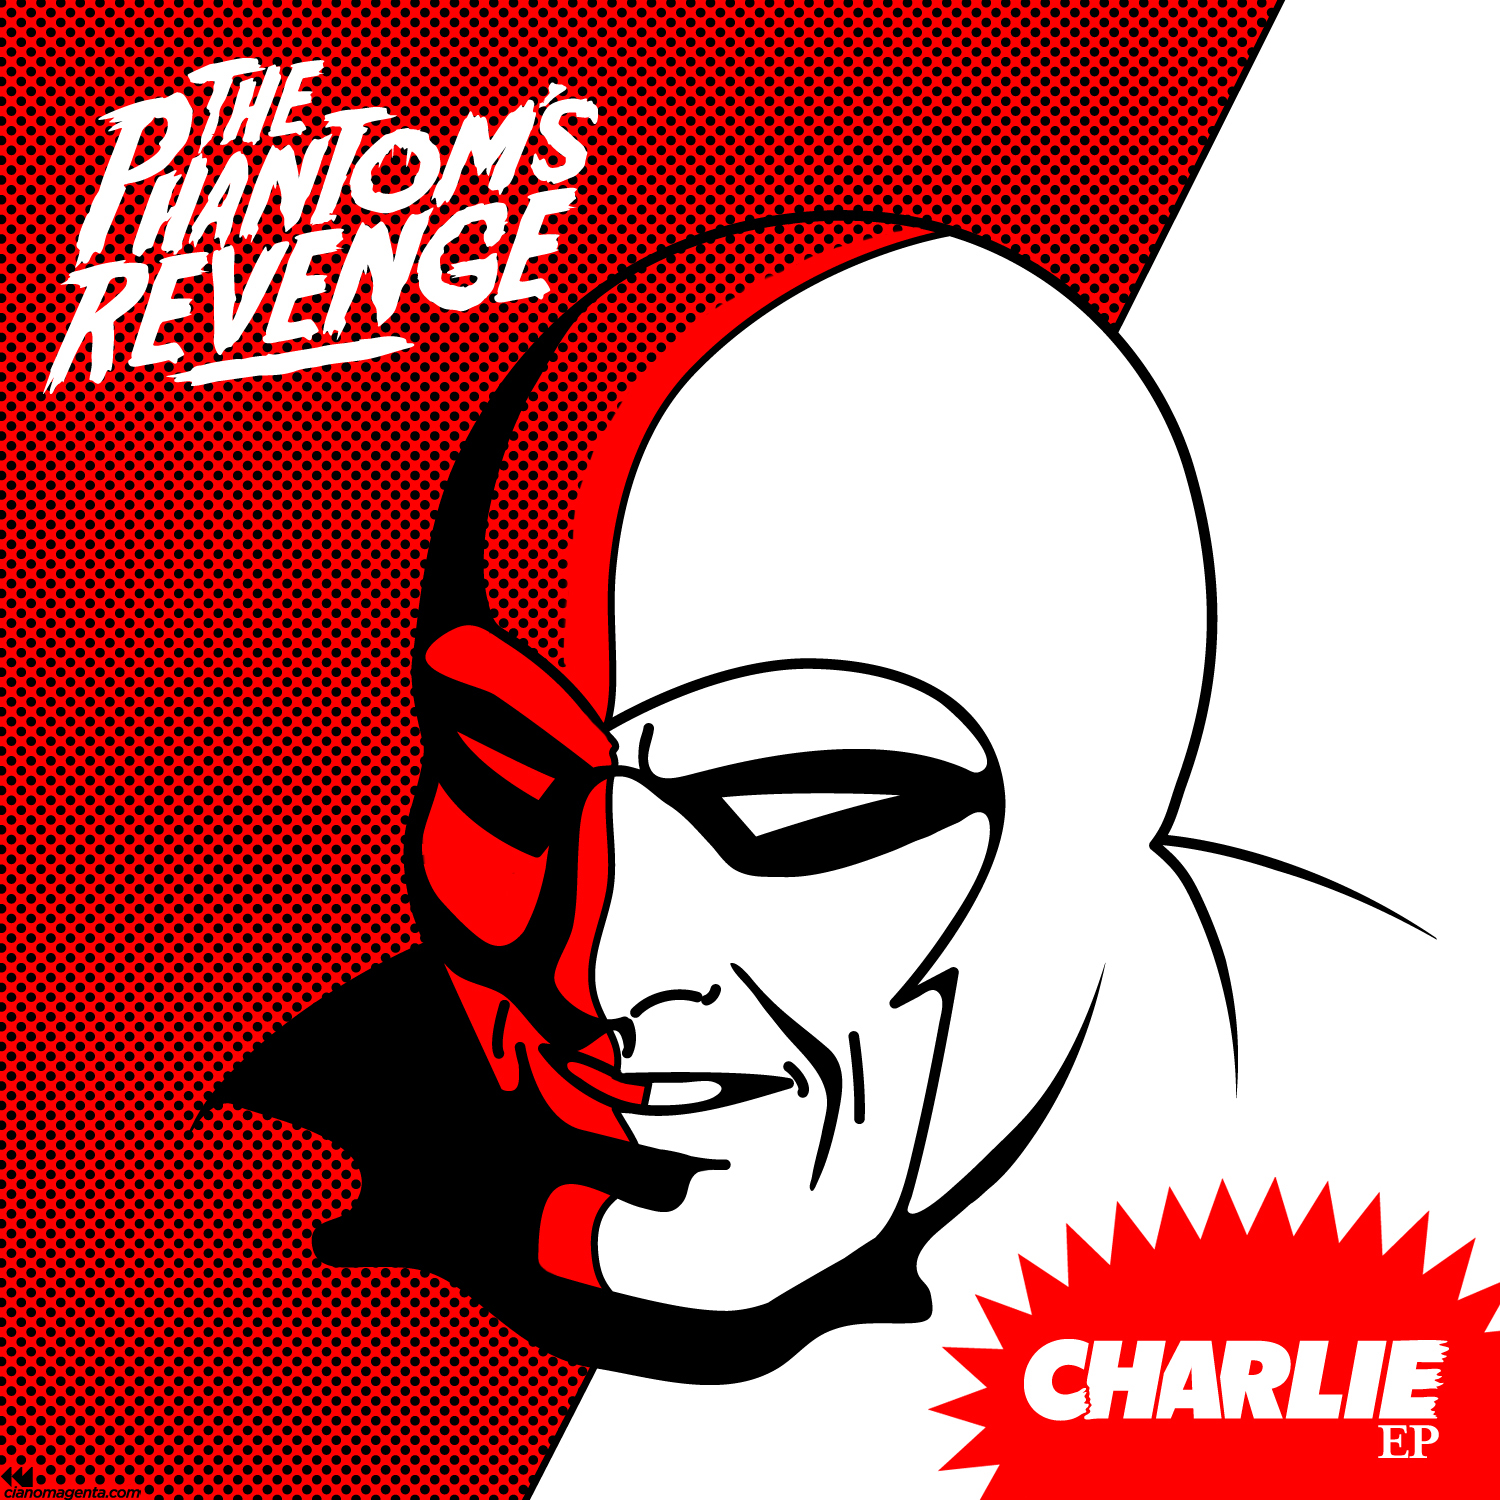 The Phantom's Revenge - Charlie ep